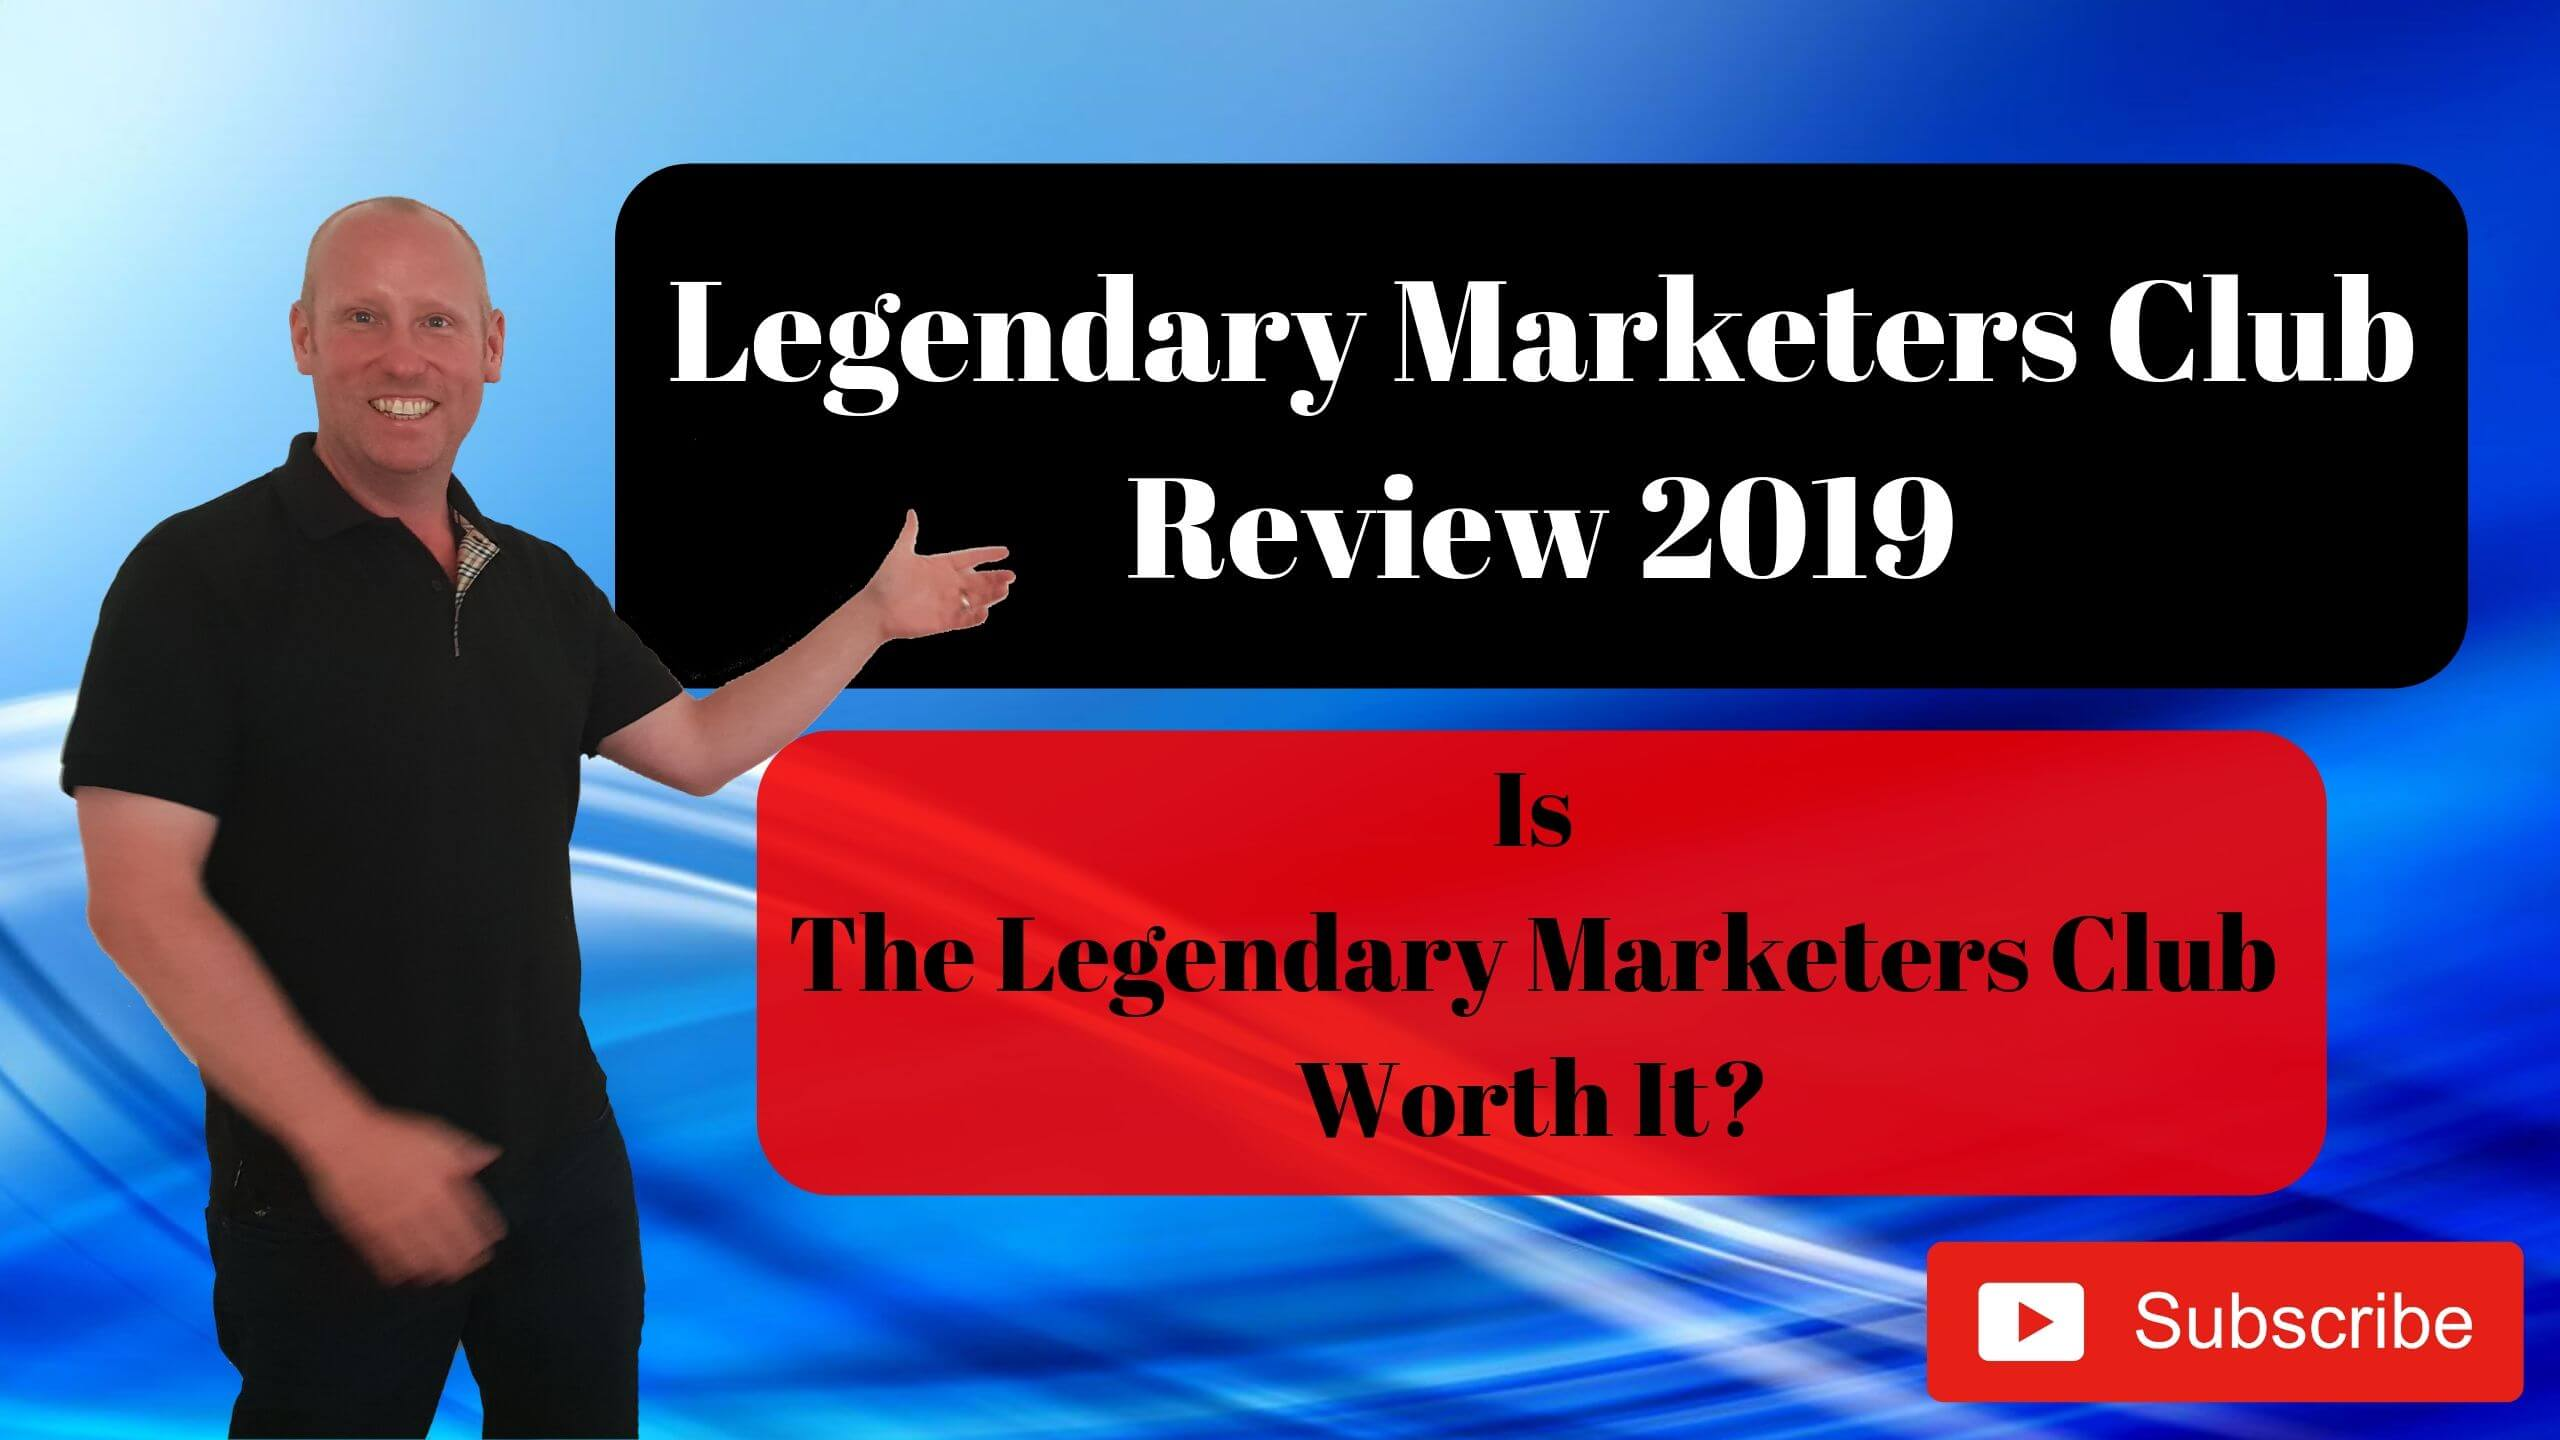 Internet Marketing Program Legendary Marketer  Features Video